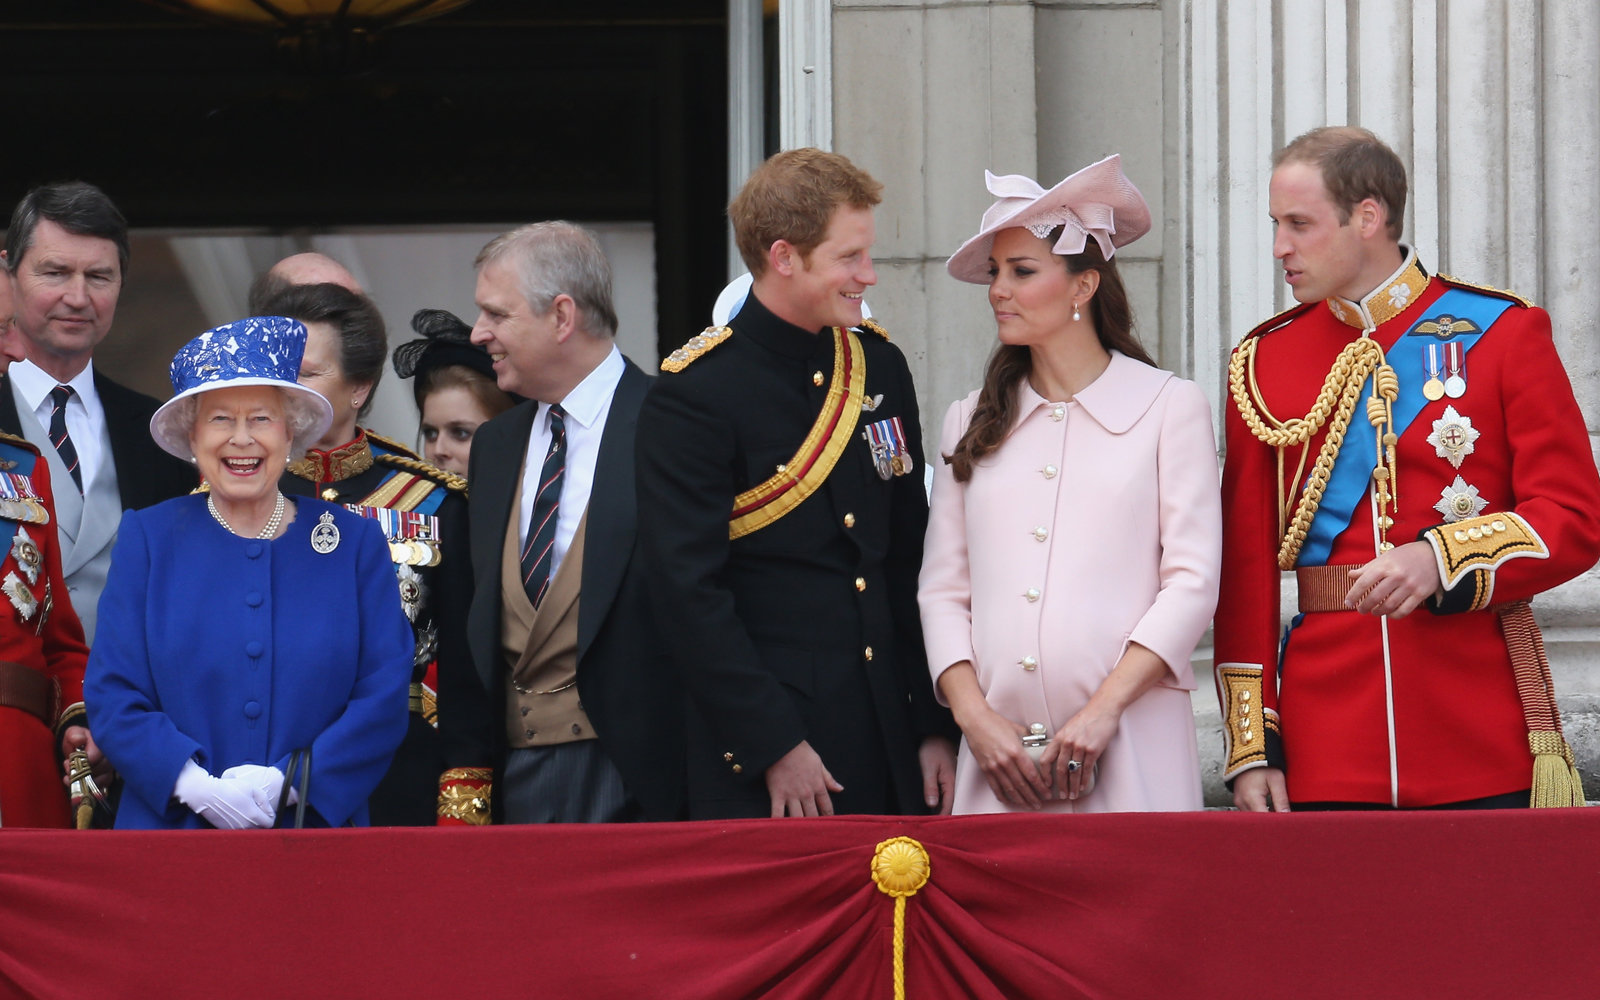 Kate Middleton, Prince William Arrived Late For Easter Service With Queen Elizabeth